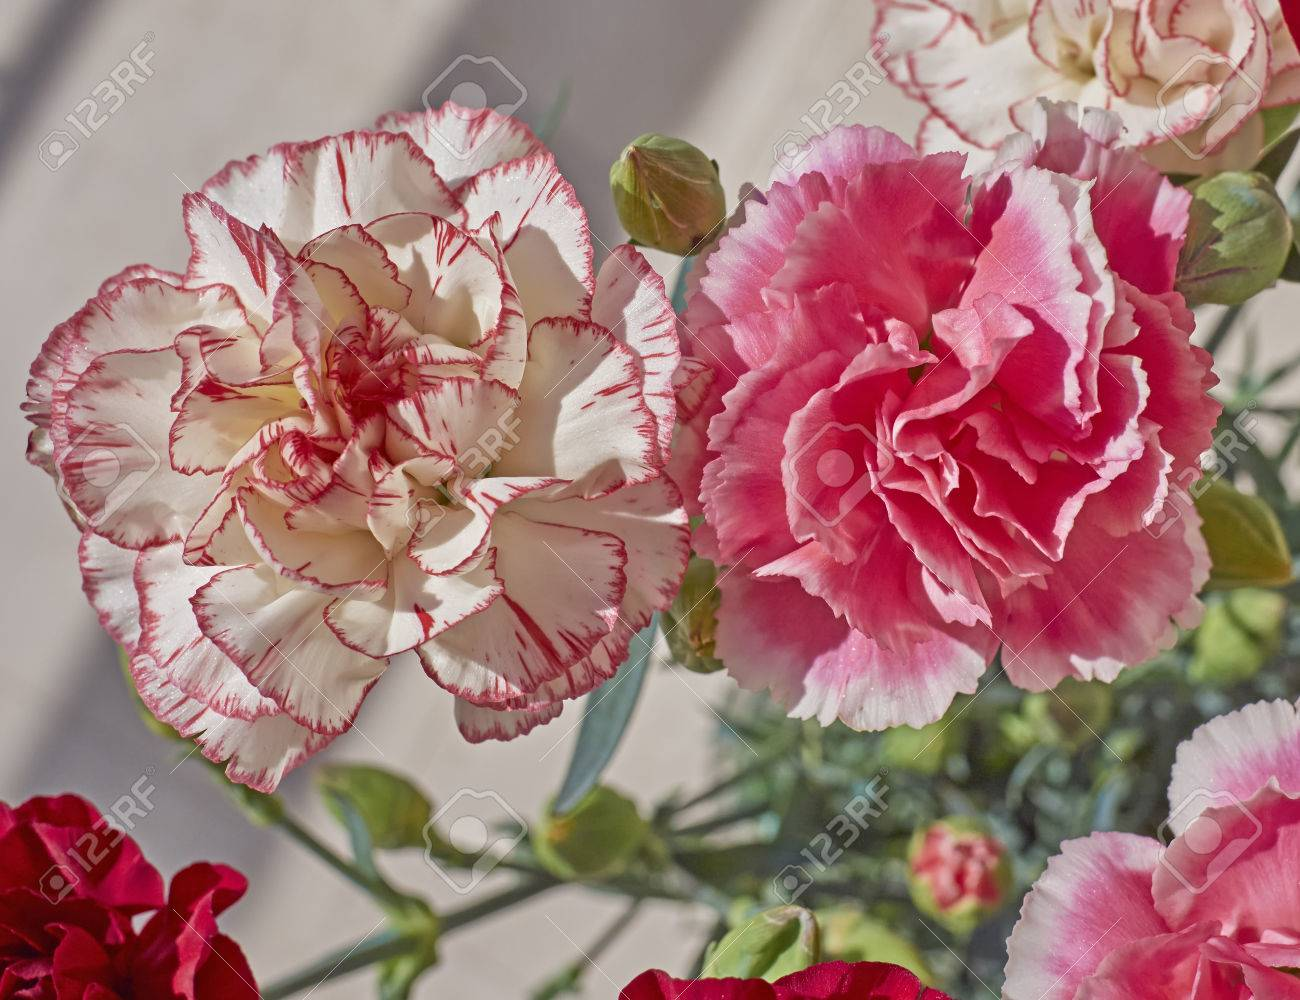 Pink And White Carnation Flowers Closeup Stock Photo Picture And